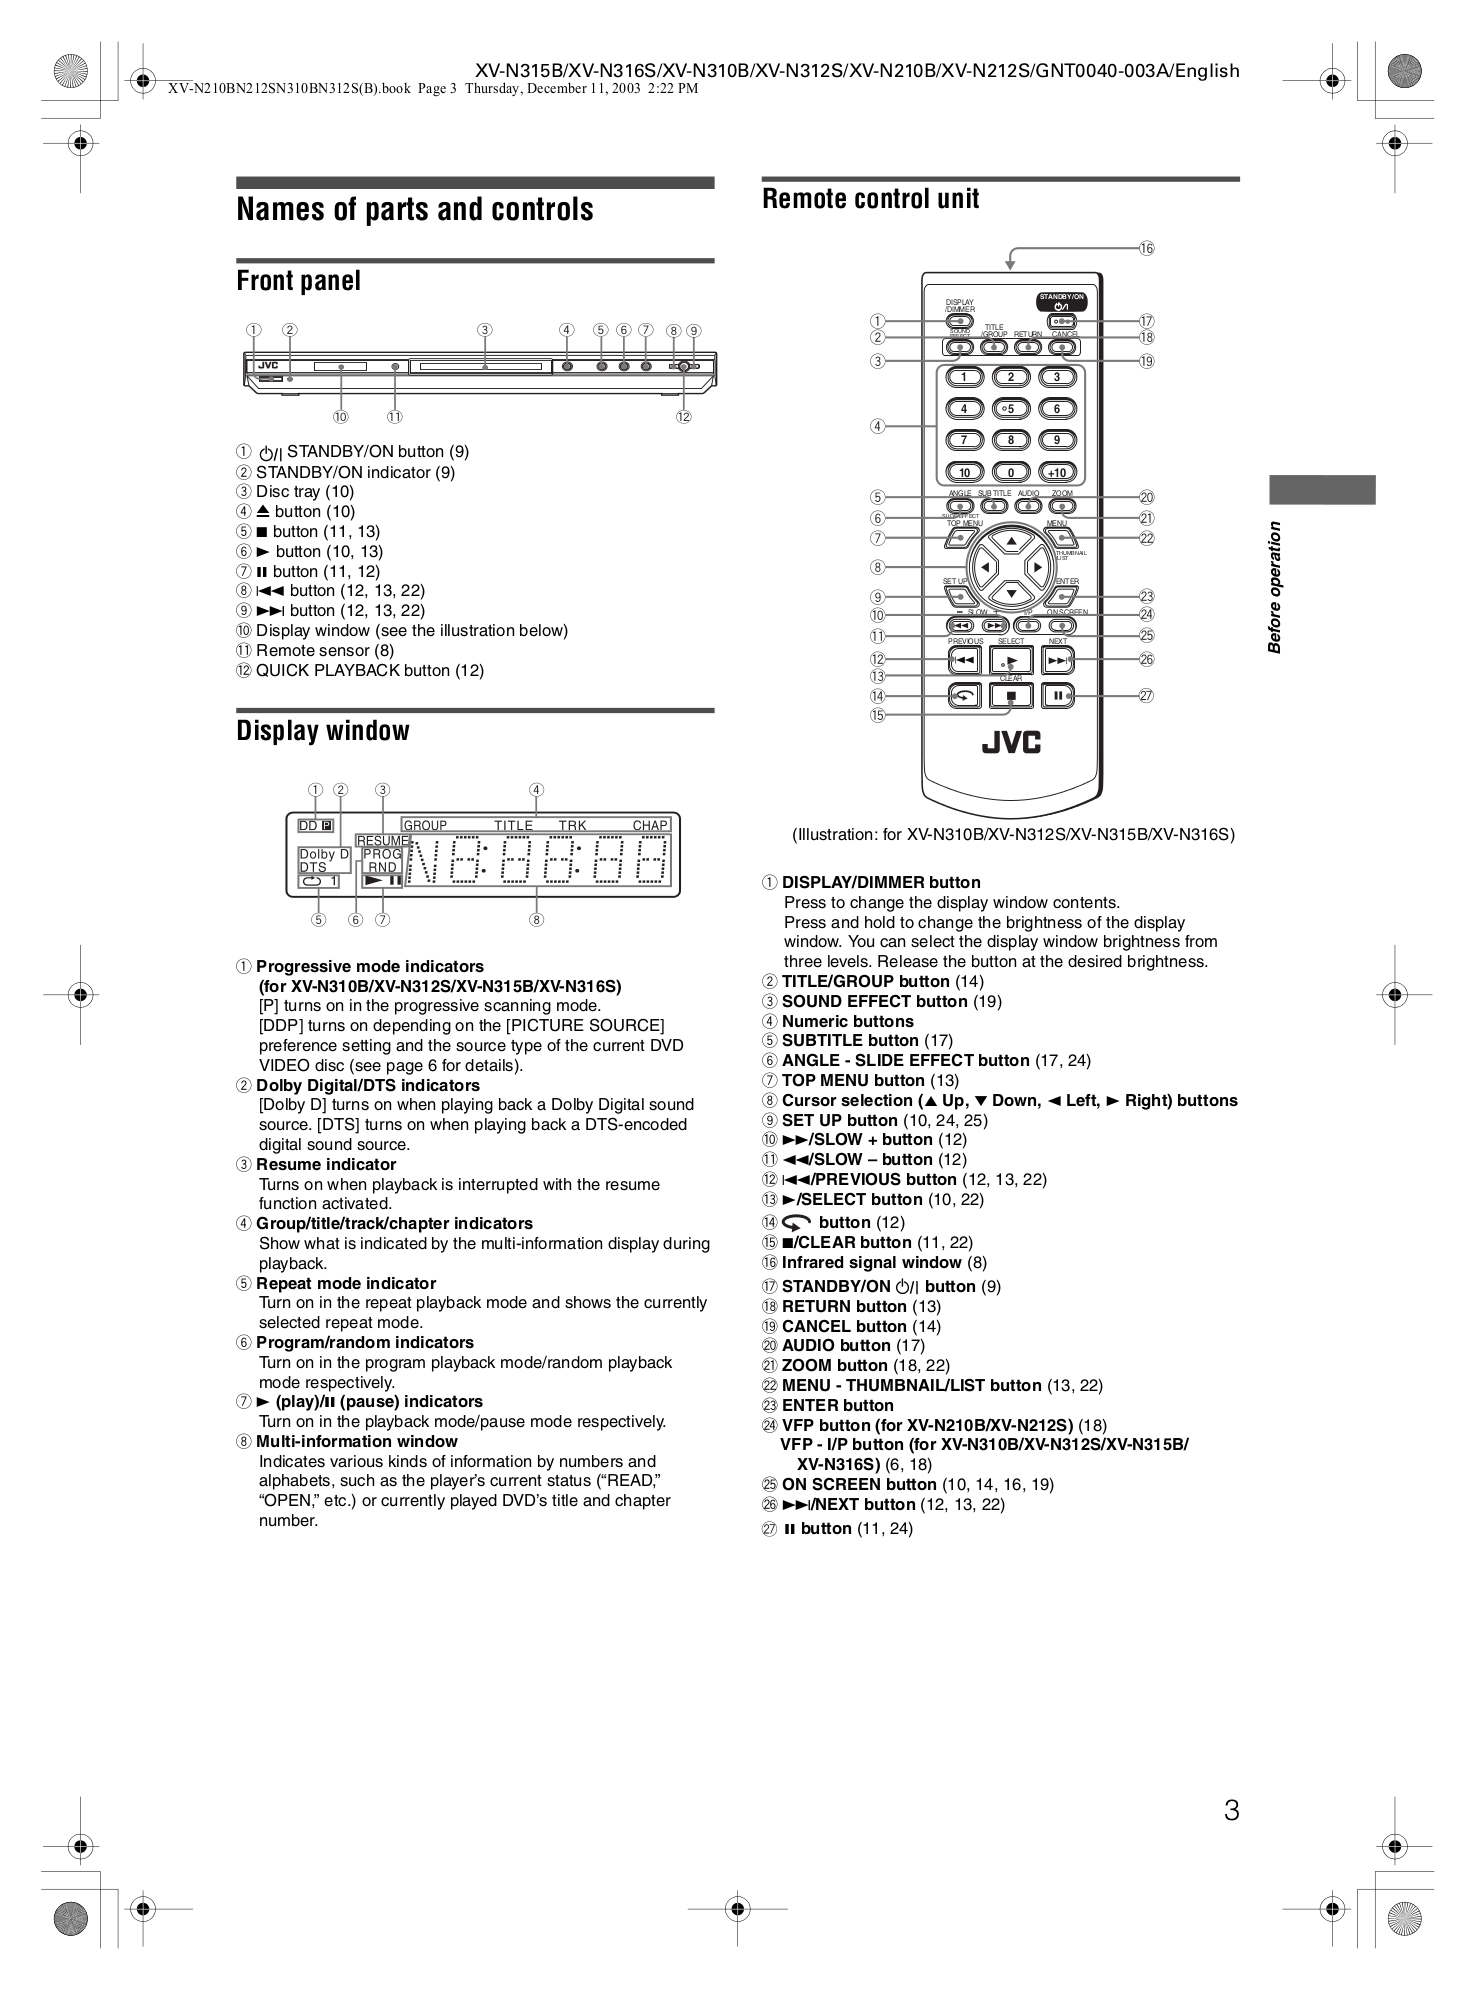 PDF manual for JVC DVD Players XV-N312S